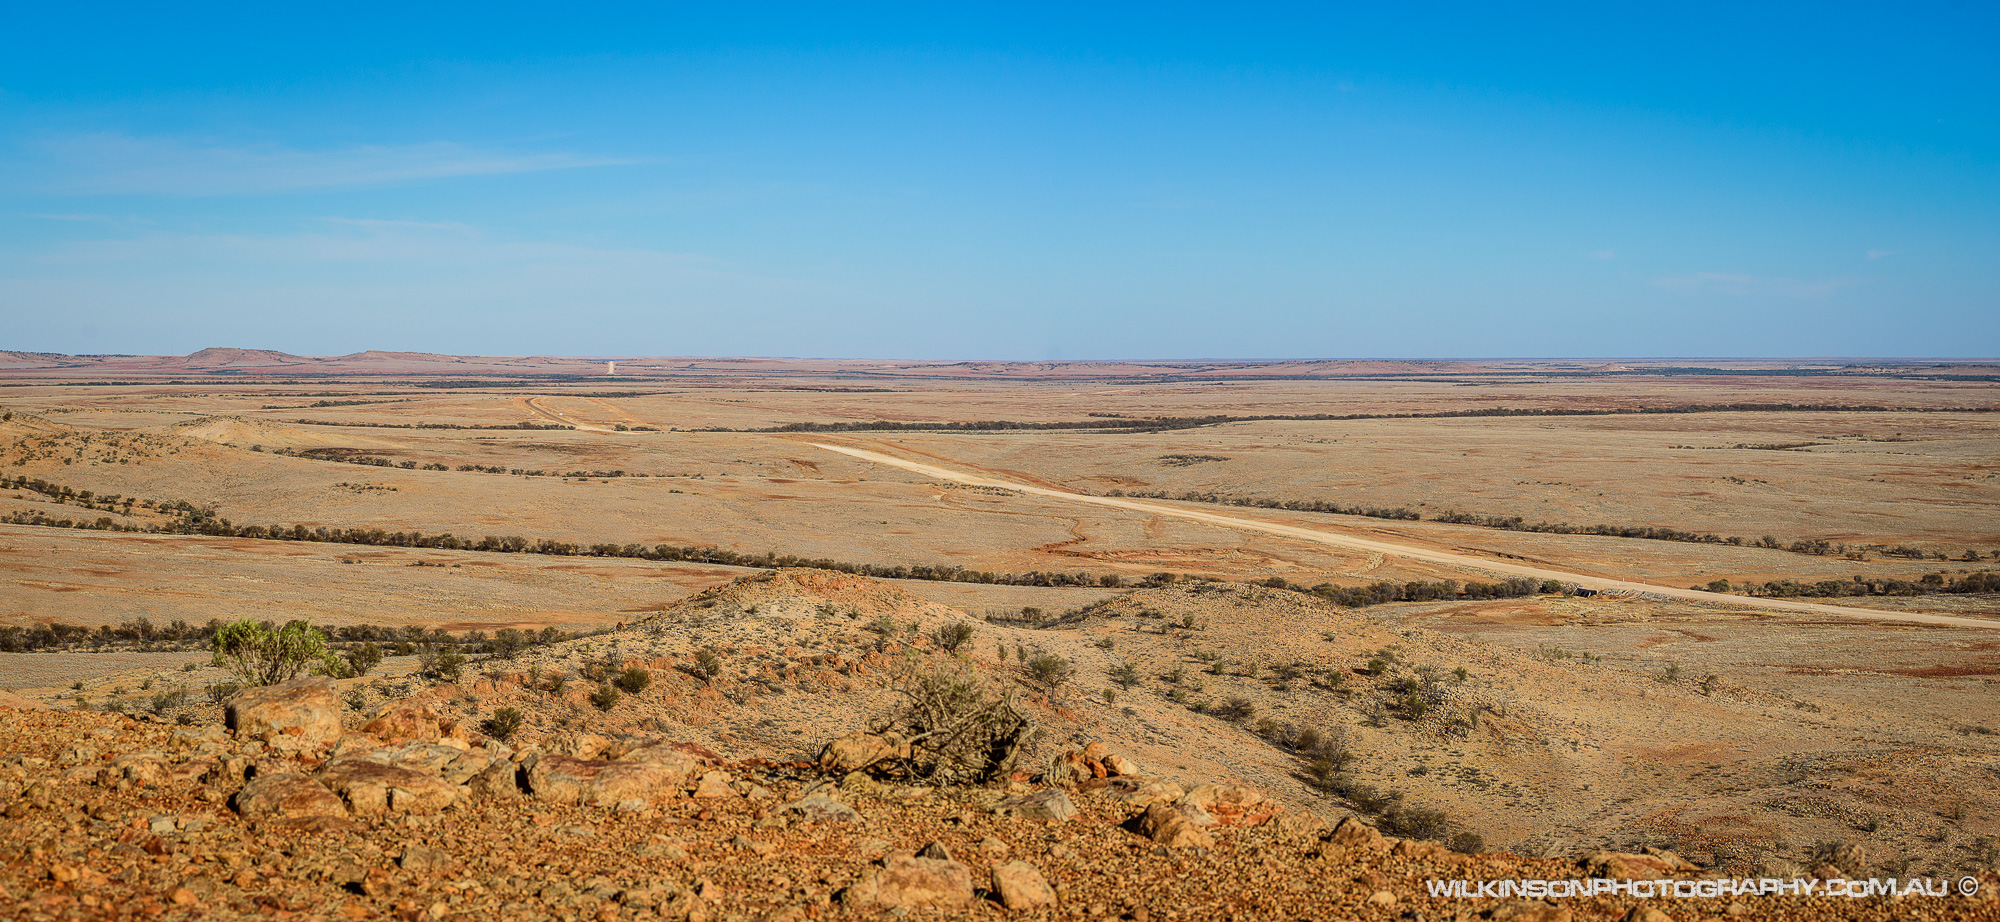 June 02, 2015 - Ride ADV - Finke Adventure Rider-57-Pano